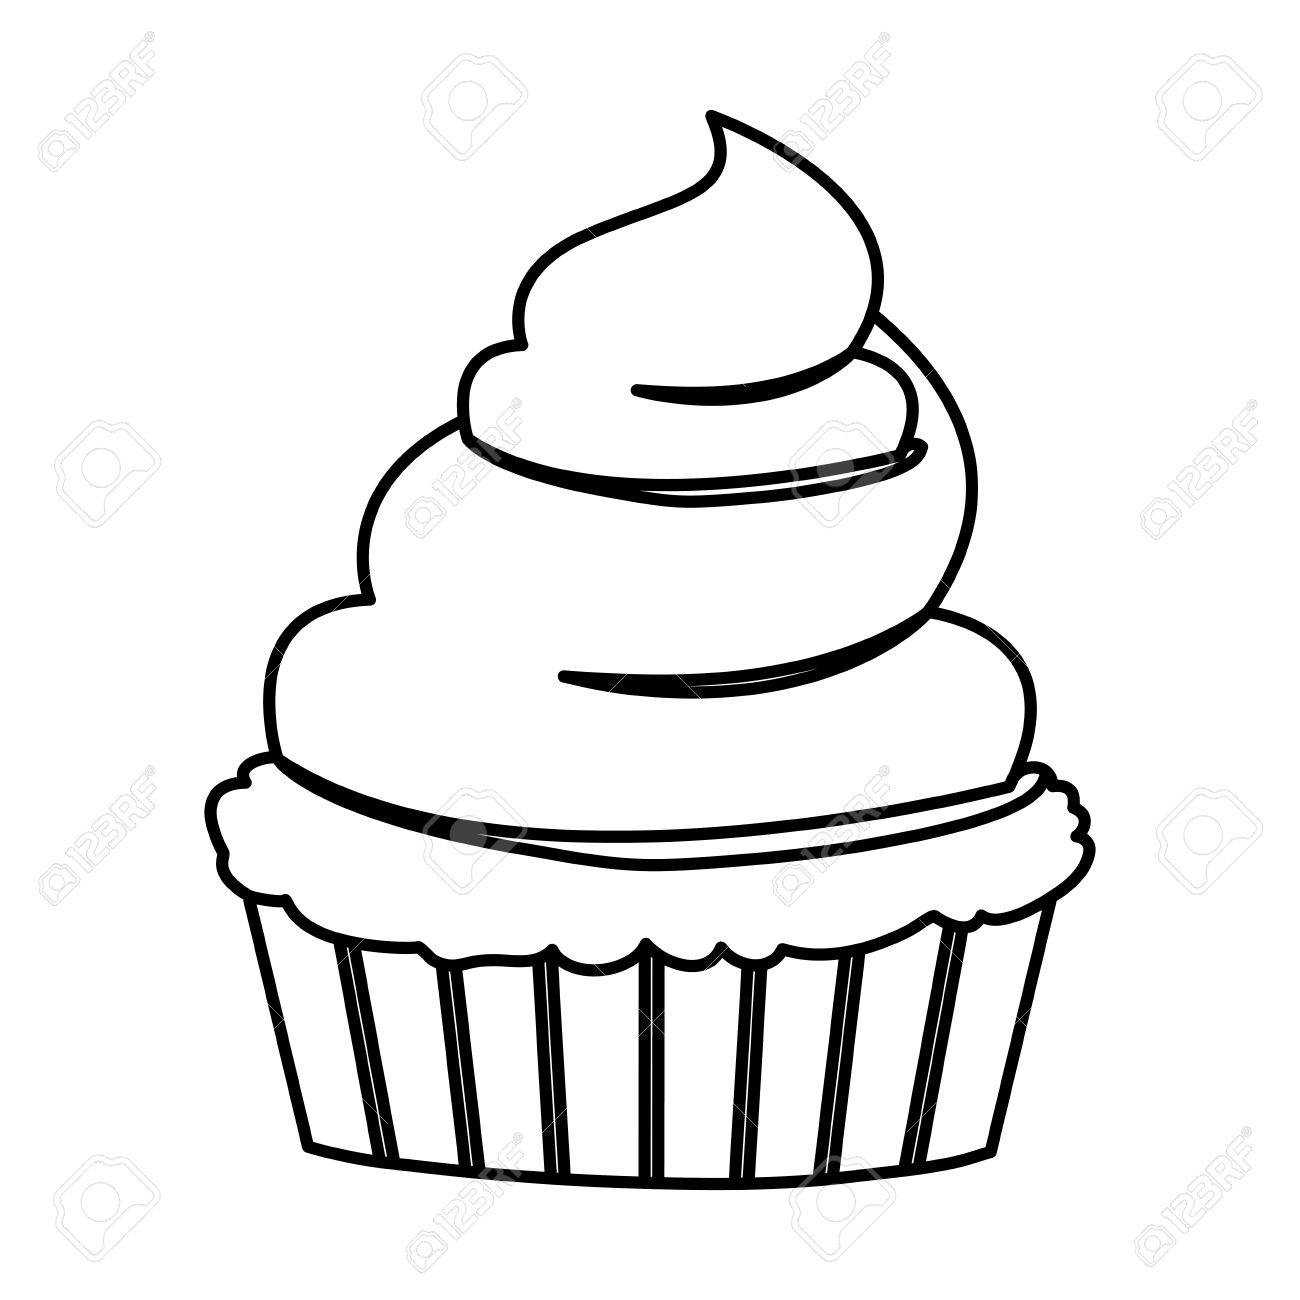 1300x1300 Sketch Contour Of Hand Drawing Cupcake With And Vainilla